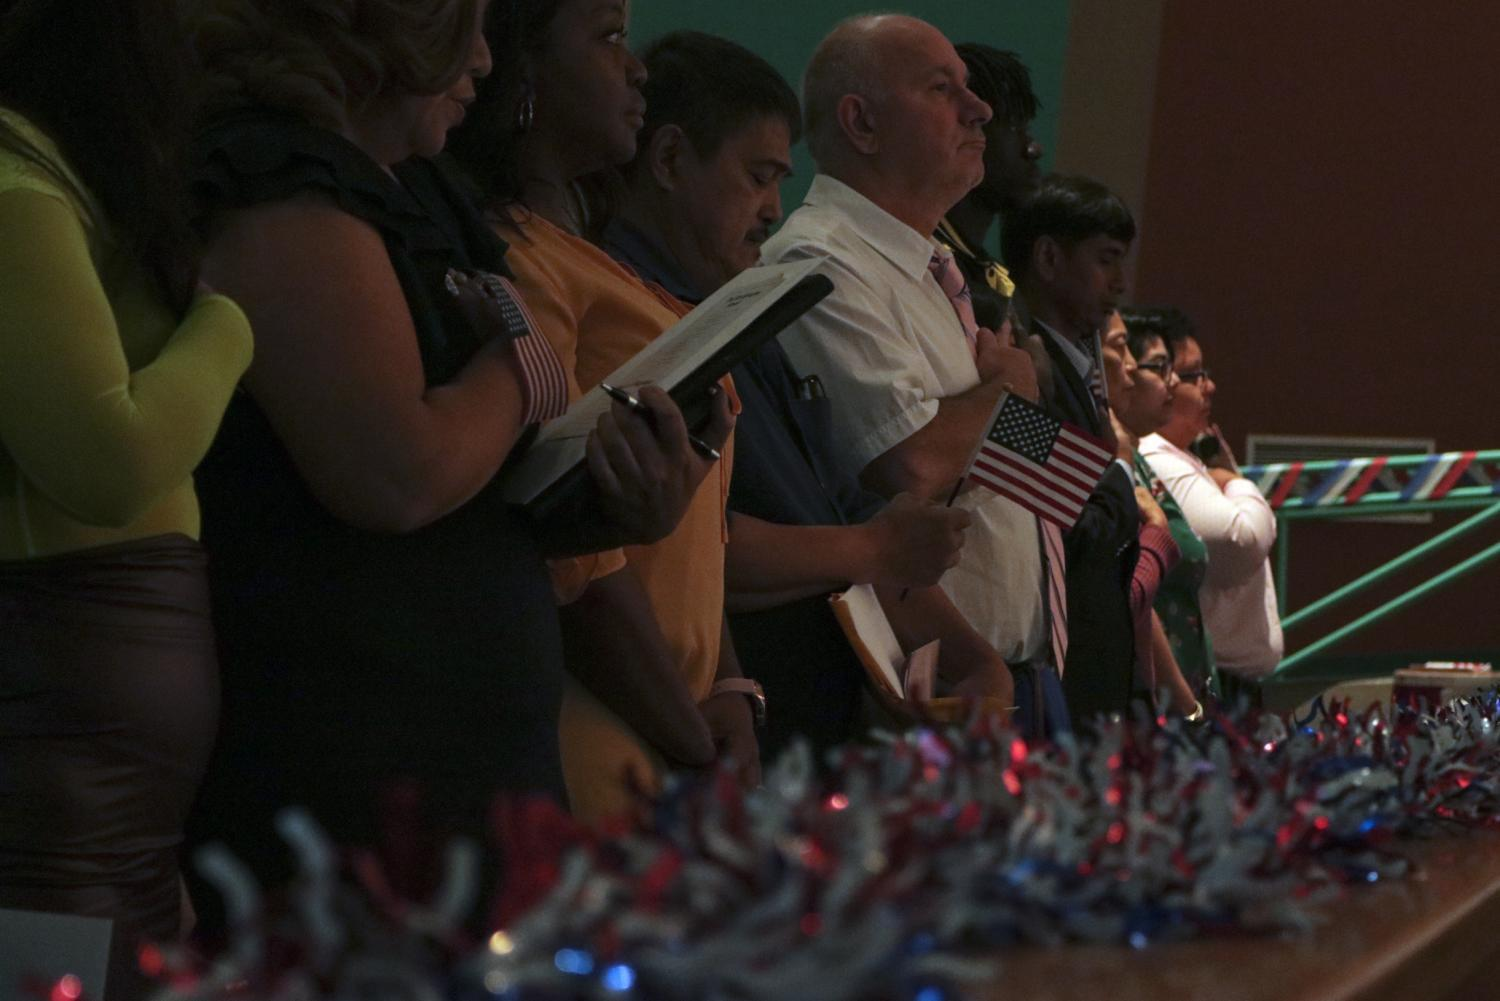 Naturalized citizens